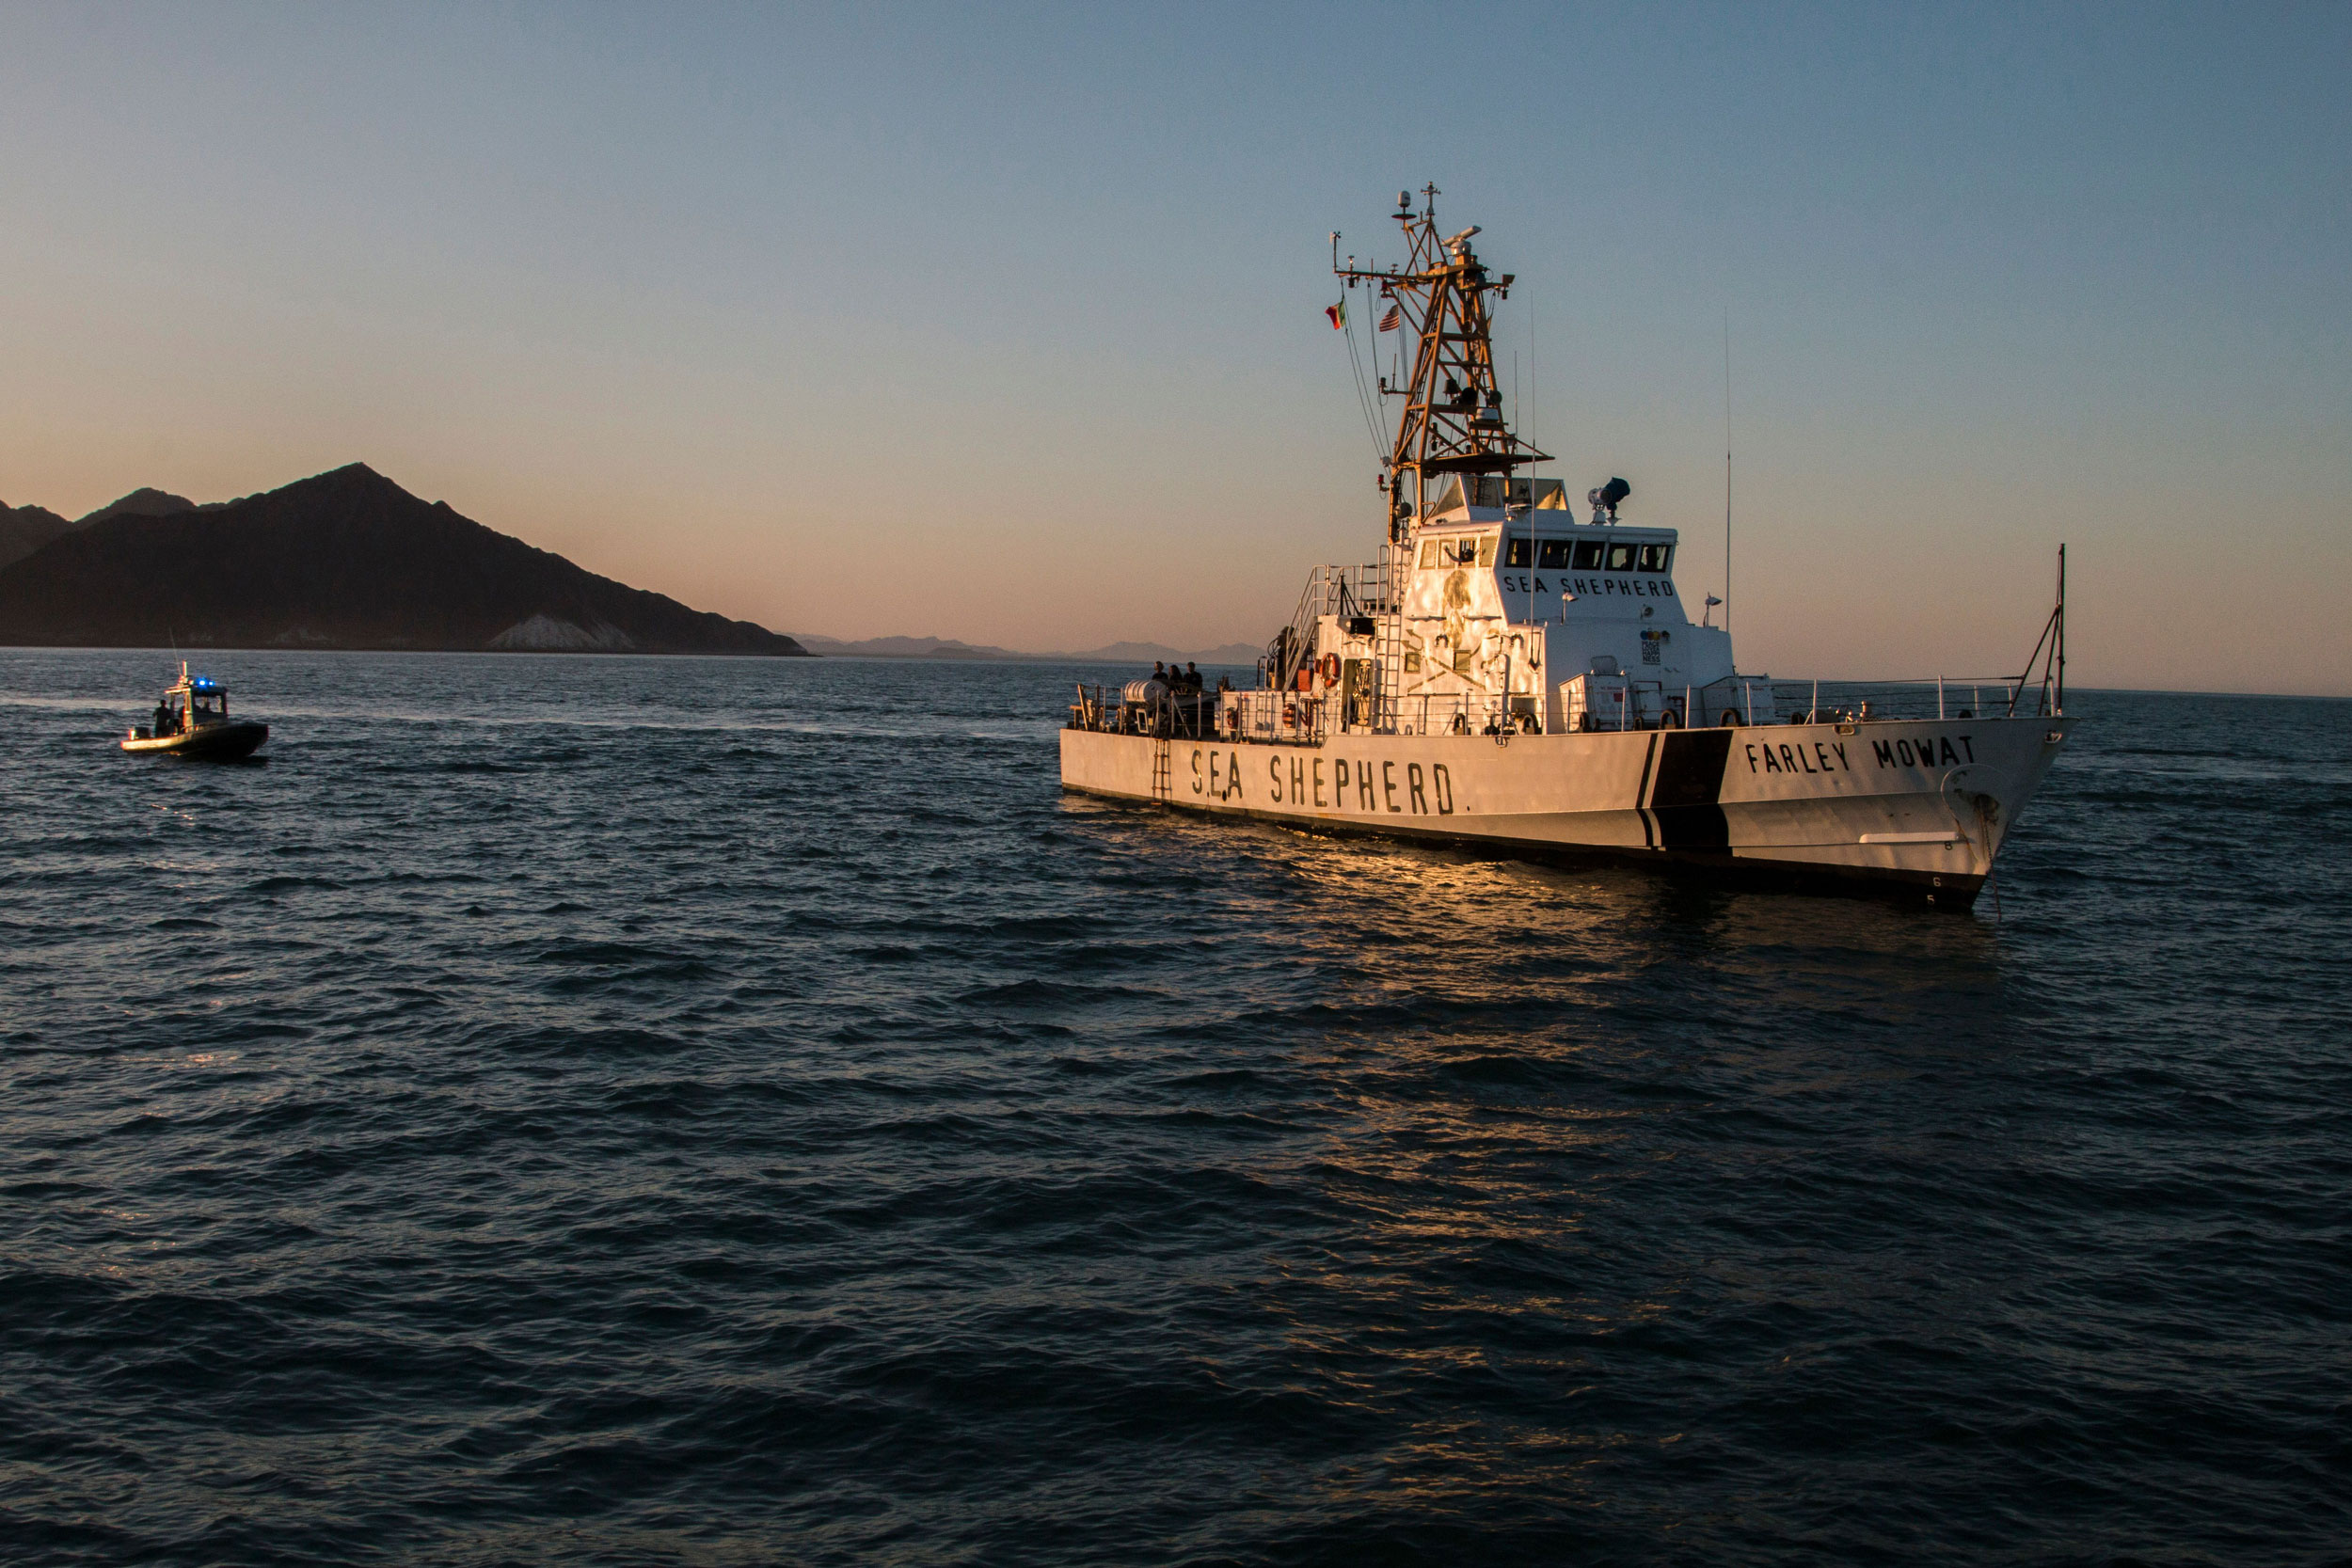 With approval from the Mexican government, the Sea Shepherd Conservation Society has been patrolling the Gulf of California since early 2015, monitoring totoaba poaching and later collecting illegal gill nets that can ensnare vaquitas and a variety of other wildlife. Photo by Hector Guerrero/AFP/Getty Images